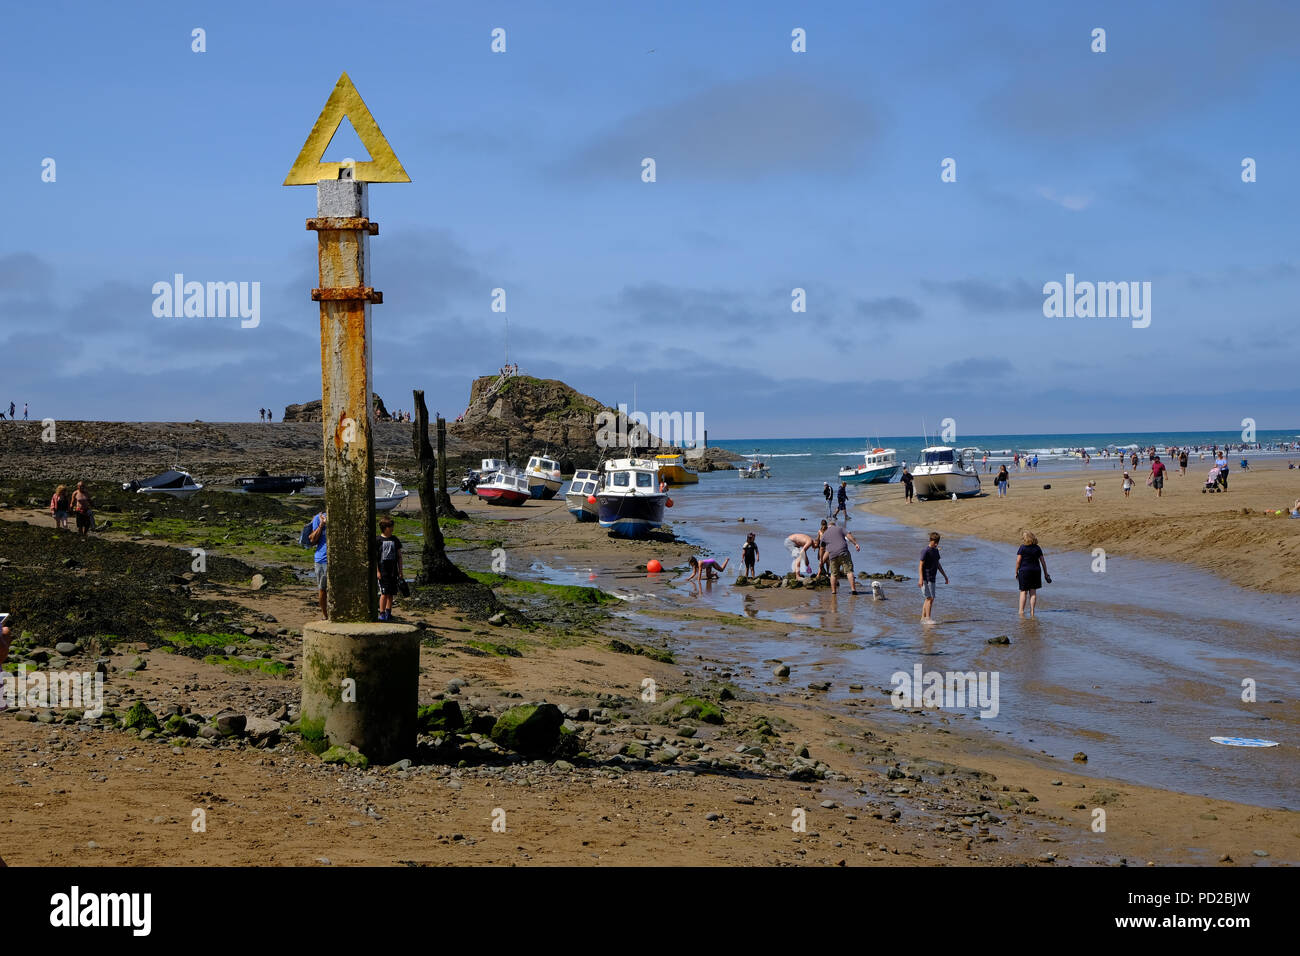 Bude, Cornwall, UK. Holidaymakers enjoy the beach at low tide at Breakwater Beach looking out into Sir Thomas's Pit and Summerleaze Beach Stock Photo